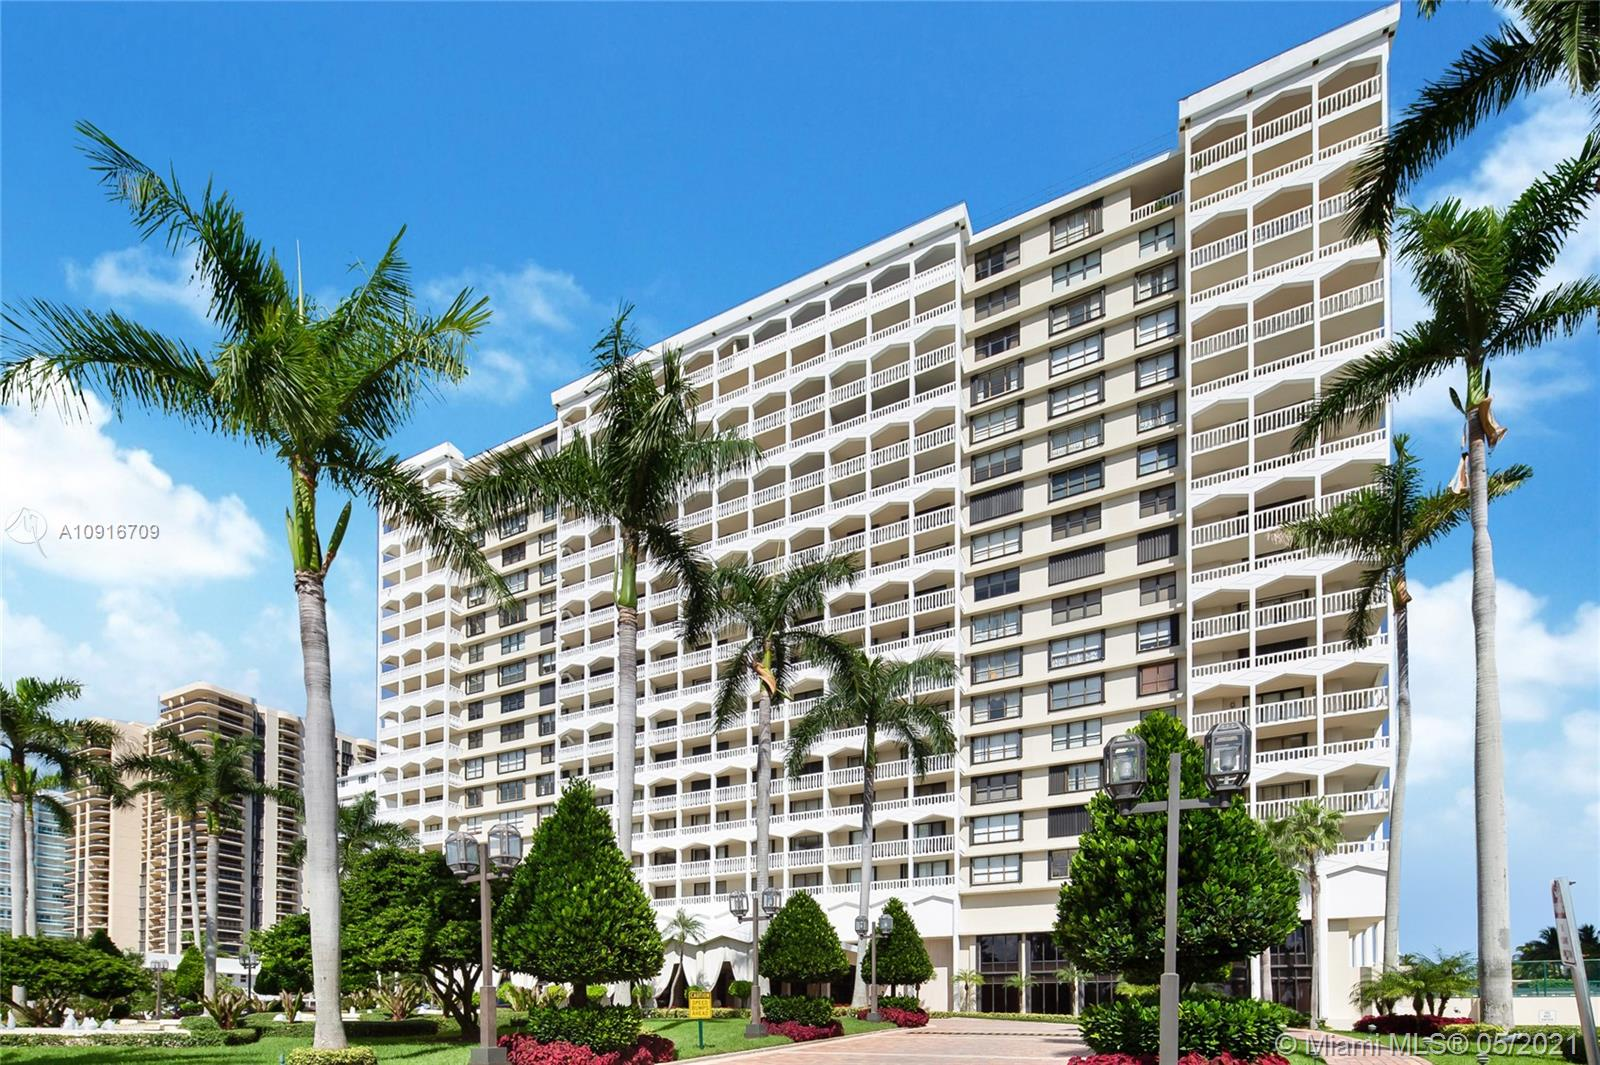 Photo of 9801 Collins Ave #11B Direct Ocean, Bal Harbour, Florida, 33154 - Bal Harbour Beach, Balmoral the first building with the pool